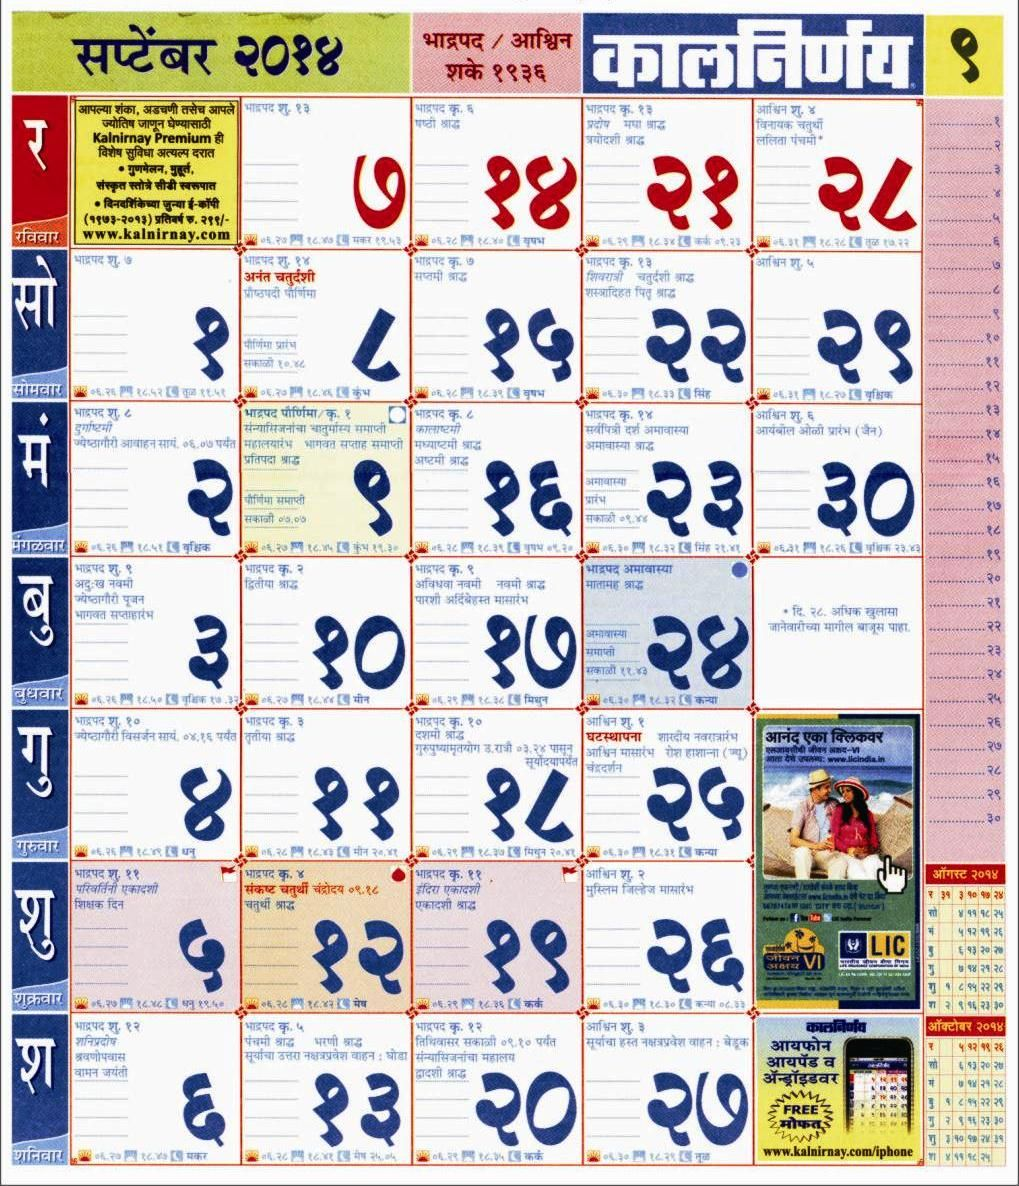 Awesome 100 Free Resume Builder Big 1099 Template Excel Square 15 Year Old Resume Sample 2 Page Resume Design Youthful 2014 Calendar Template Monthly Coloured2015 Calendar Planner Template Kalnirnay August 2014 Marathi Calendar | Kalnirnay 2014 Calendar ..